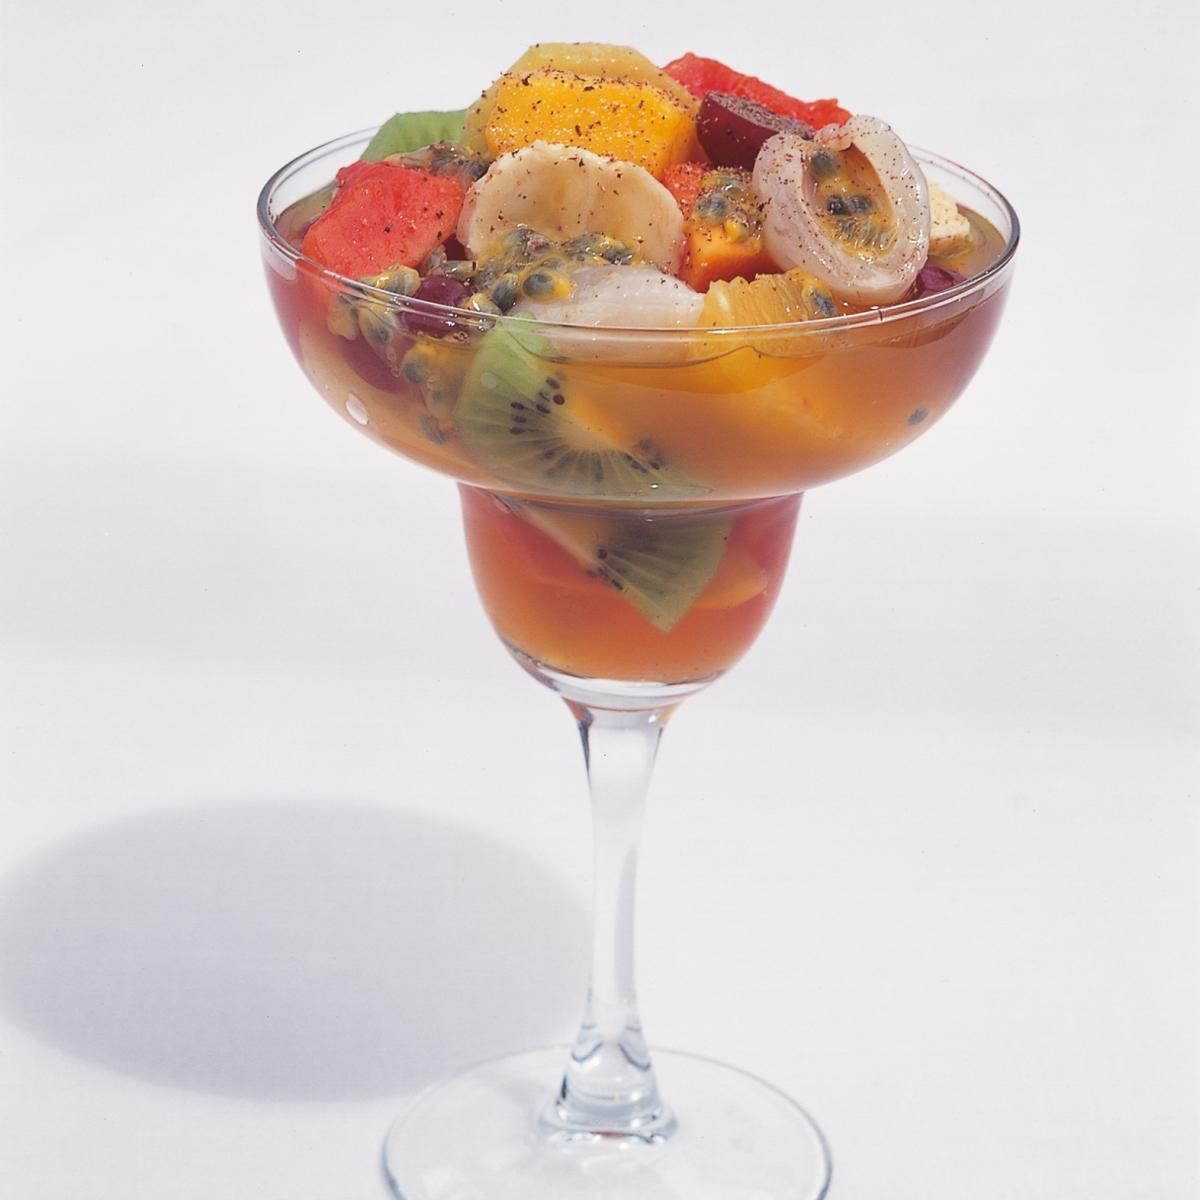 A picture of Delia's Tropical Fruit Salad in Planter's Punch recipe